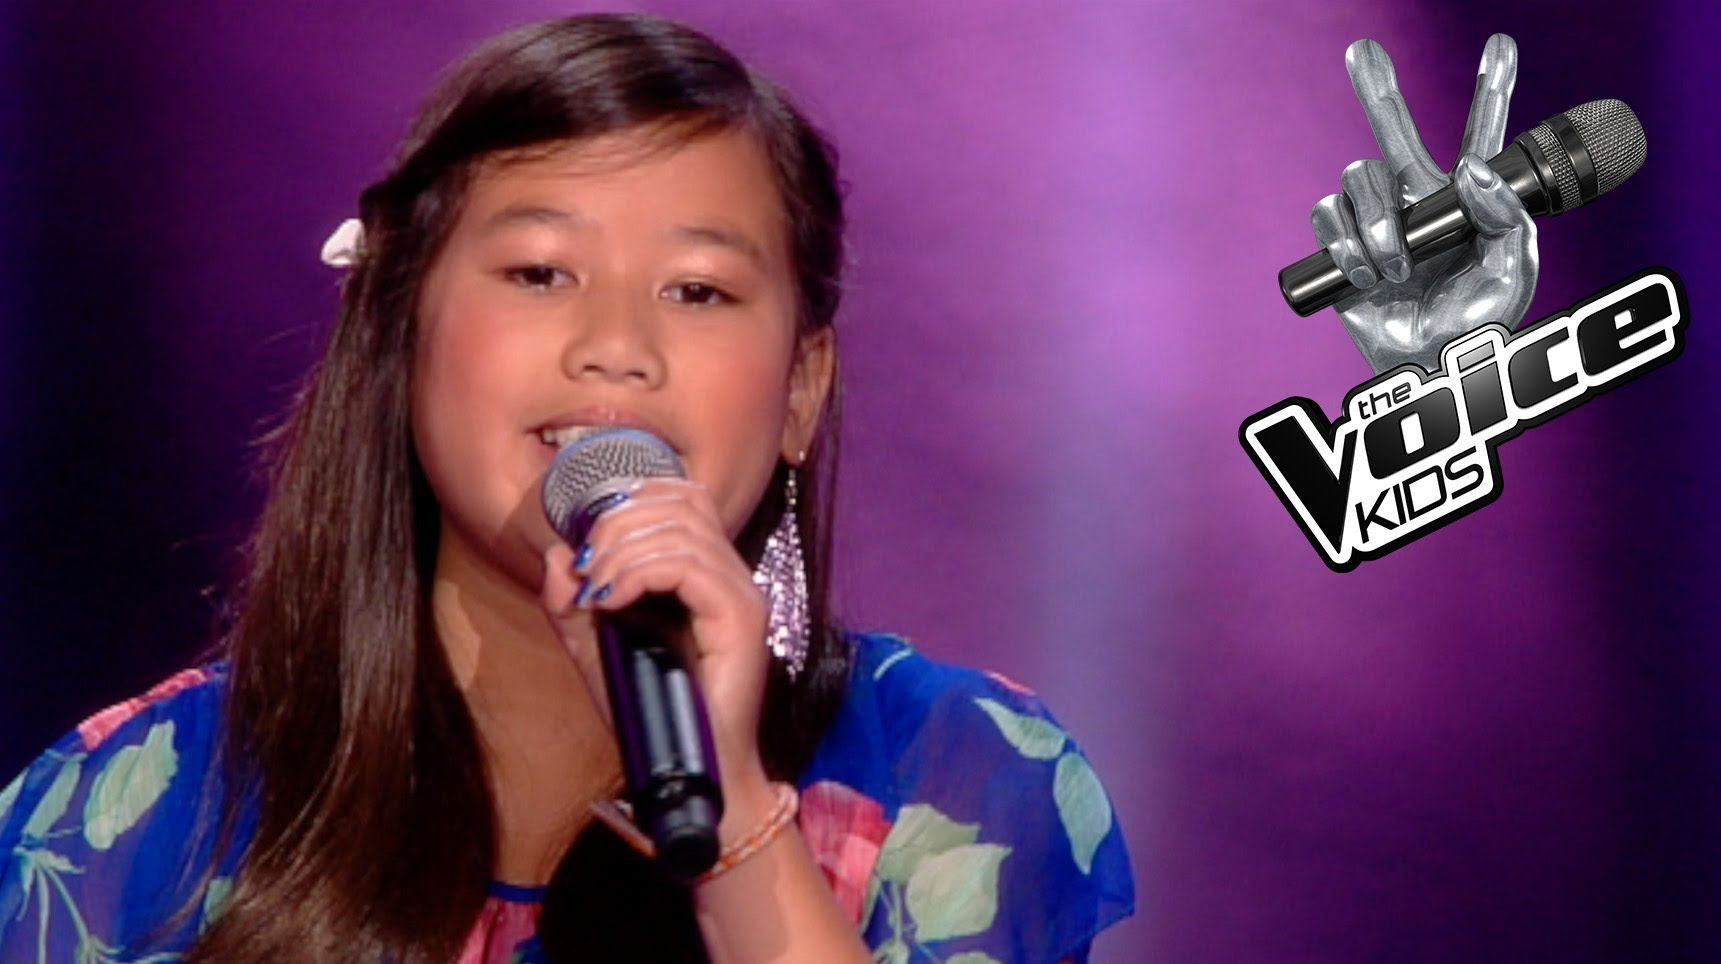 Out Here On My Own (The Voice Kids 2013: The